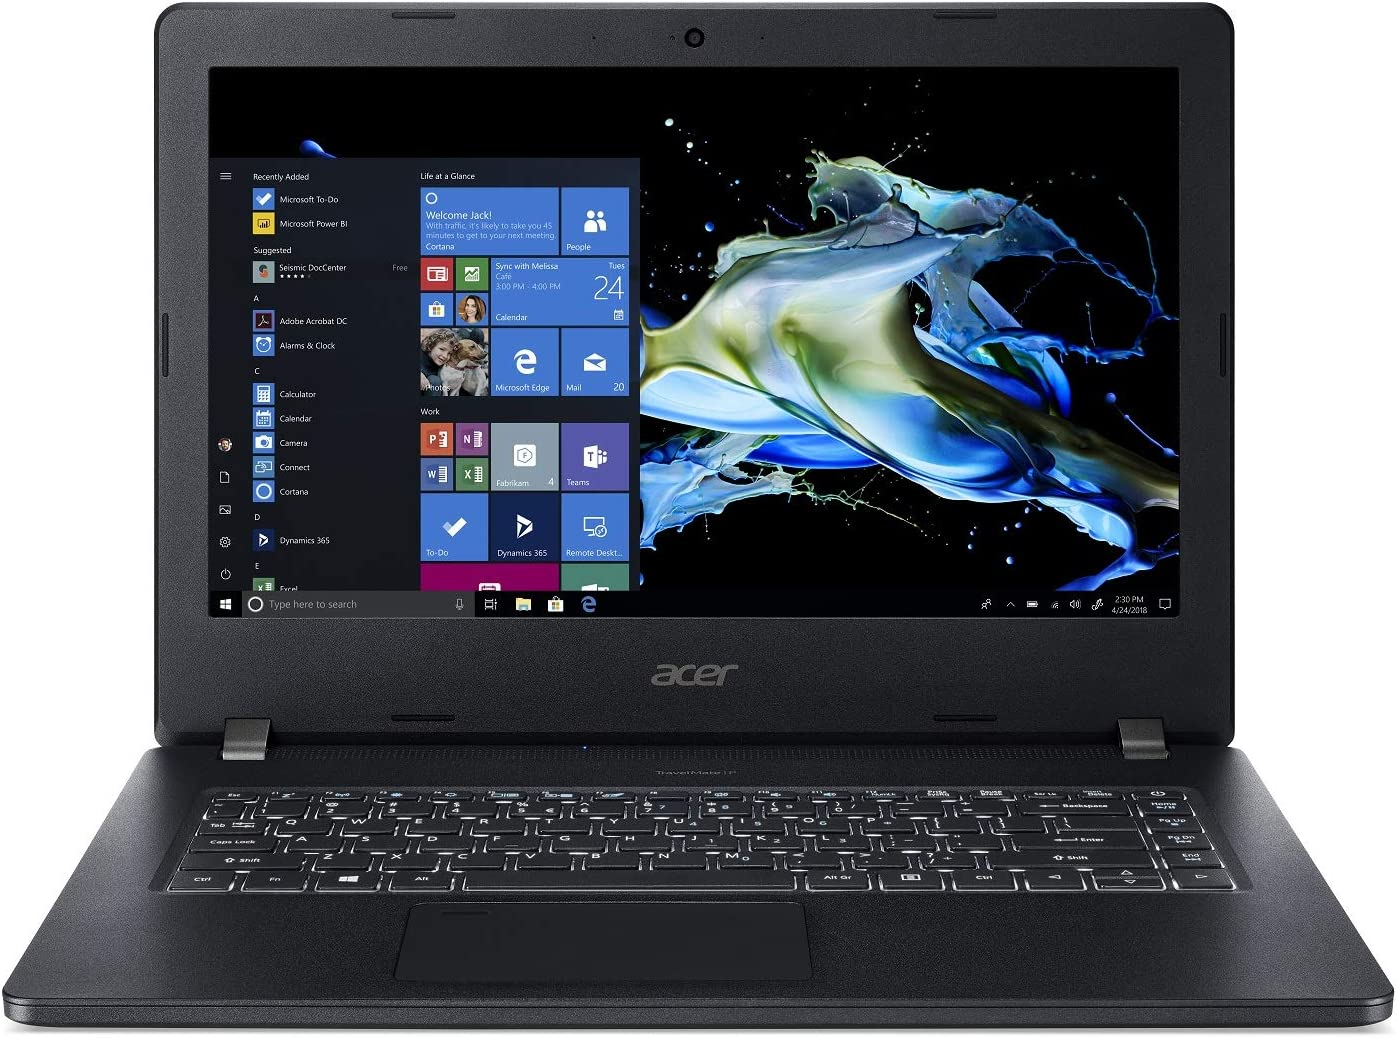 "Acer TravelMate P2 Business Laptop, 14"" FHD IPS, Intel Core i5-8250U, 8GB DDR4, 256GB SSD, 10 Hrs Battery, Win 10 Pro, TPM 2.0, Mil-Spec, Fingerprint Reader, TMP214-51-55FM"